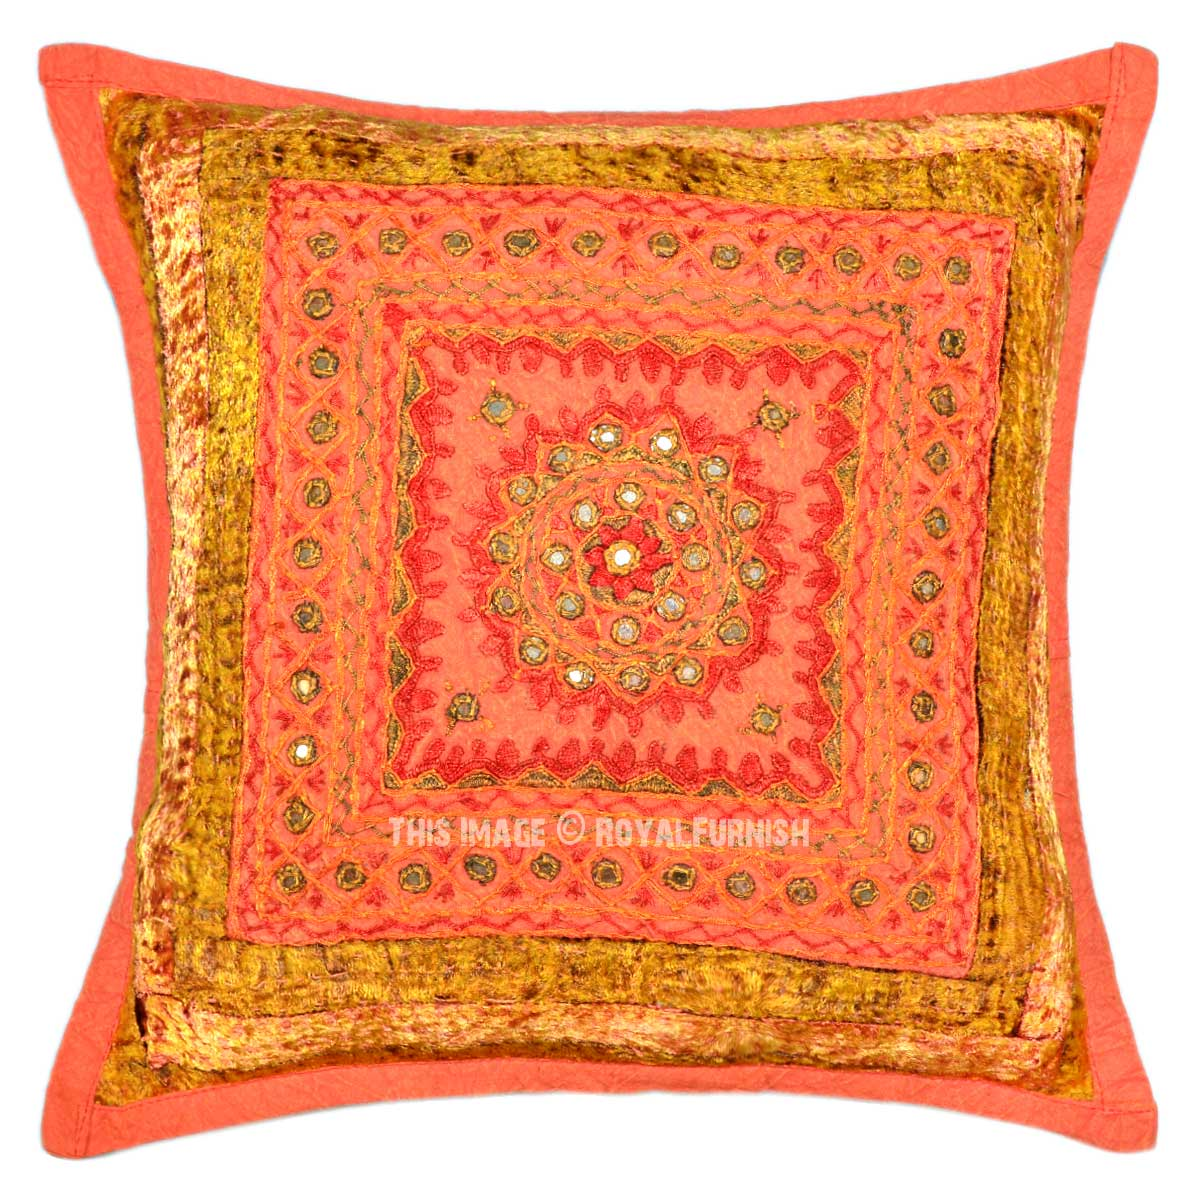 Unique Decorative Throw Pillows : Orange Multi Unique One-Of-A-Kind Handmade Decorative Mirror Pillow Case 16X16 - RoyalFurnish.com